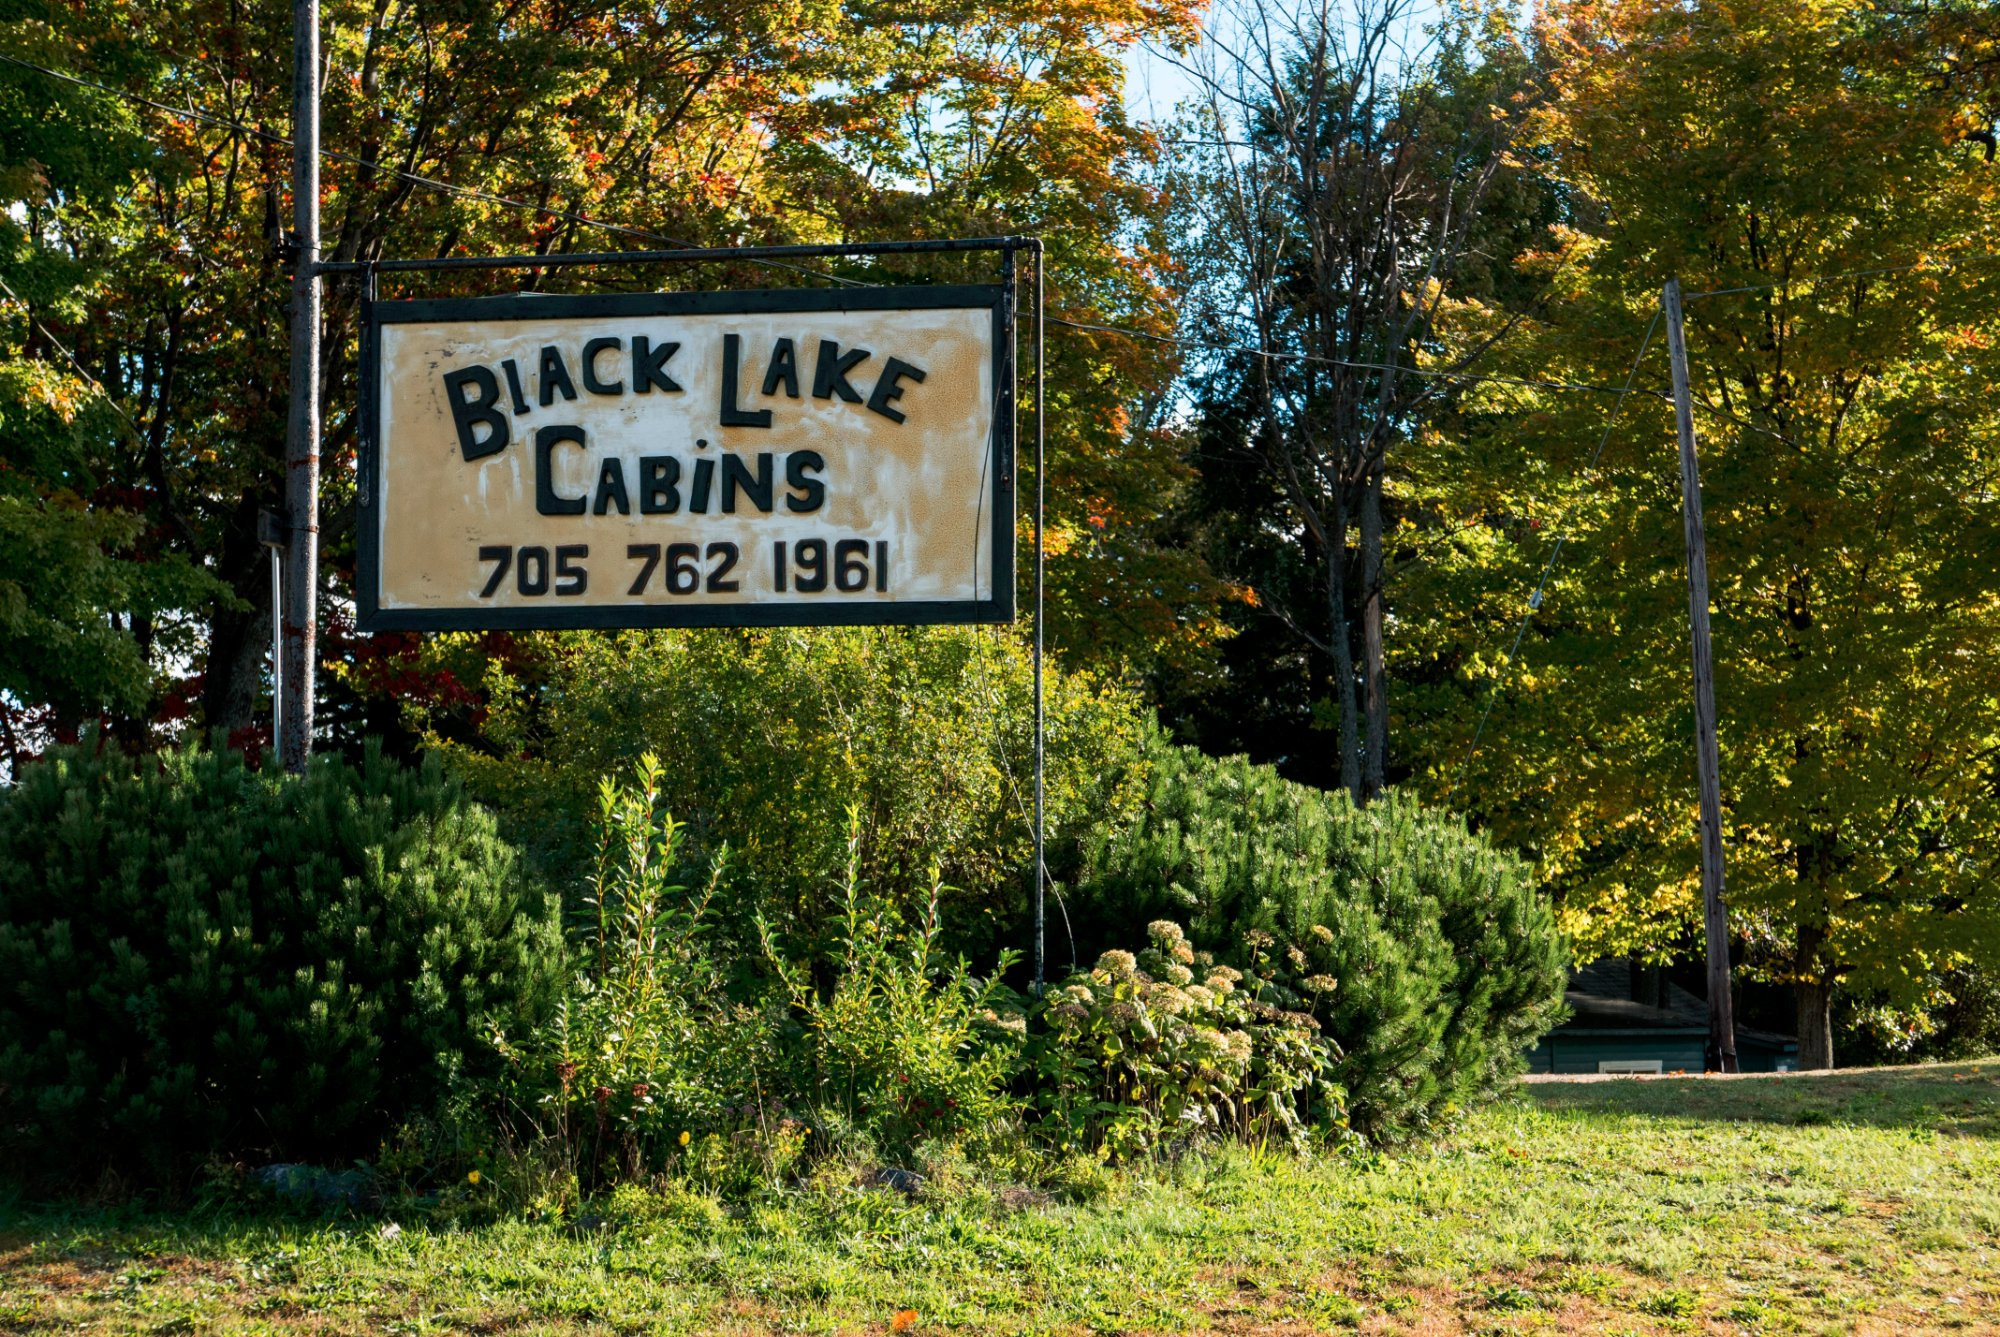 Black Lake Cabins